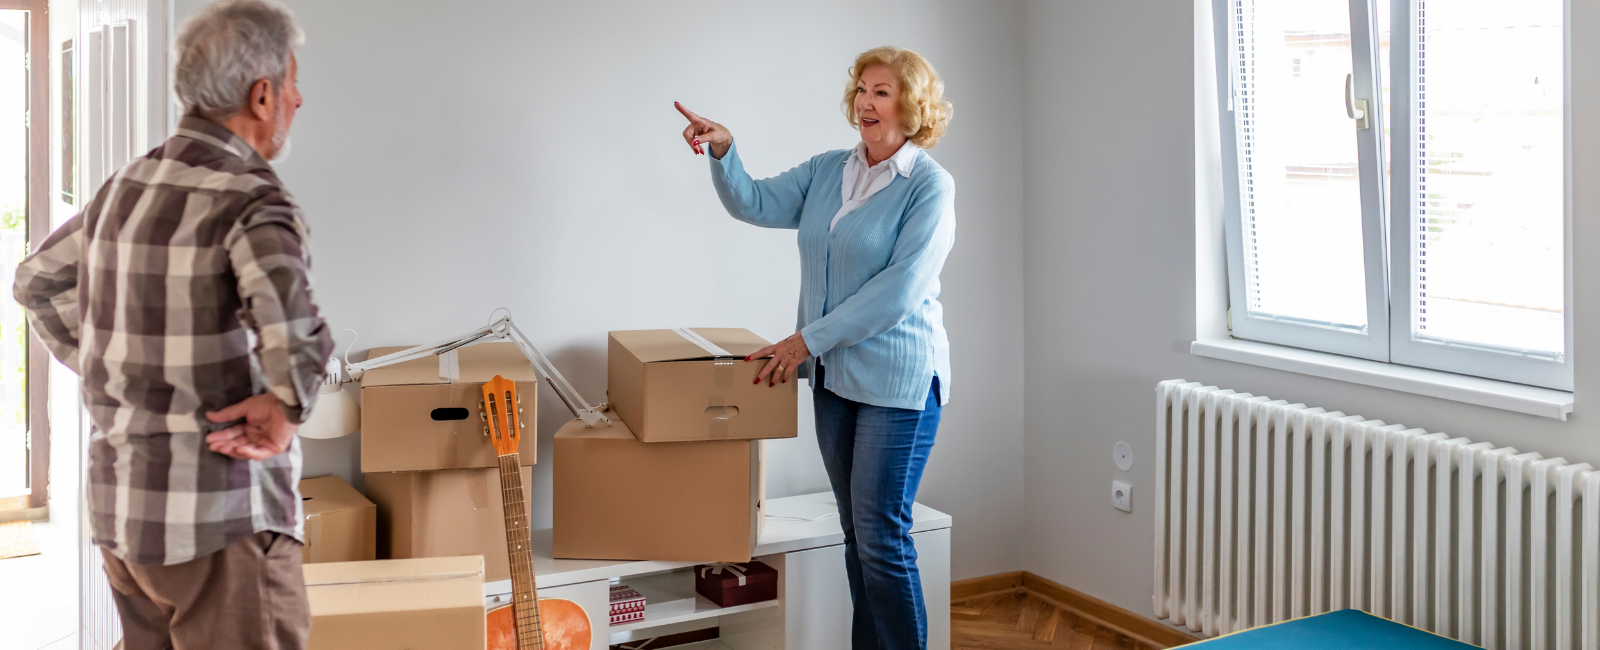 Senior man and women with moving boxes downsizing